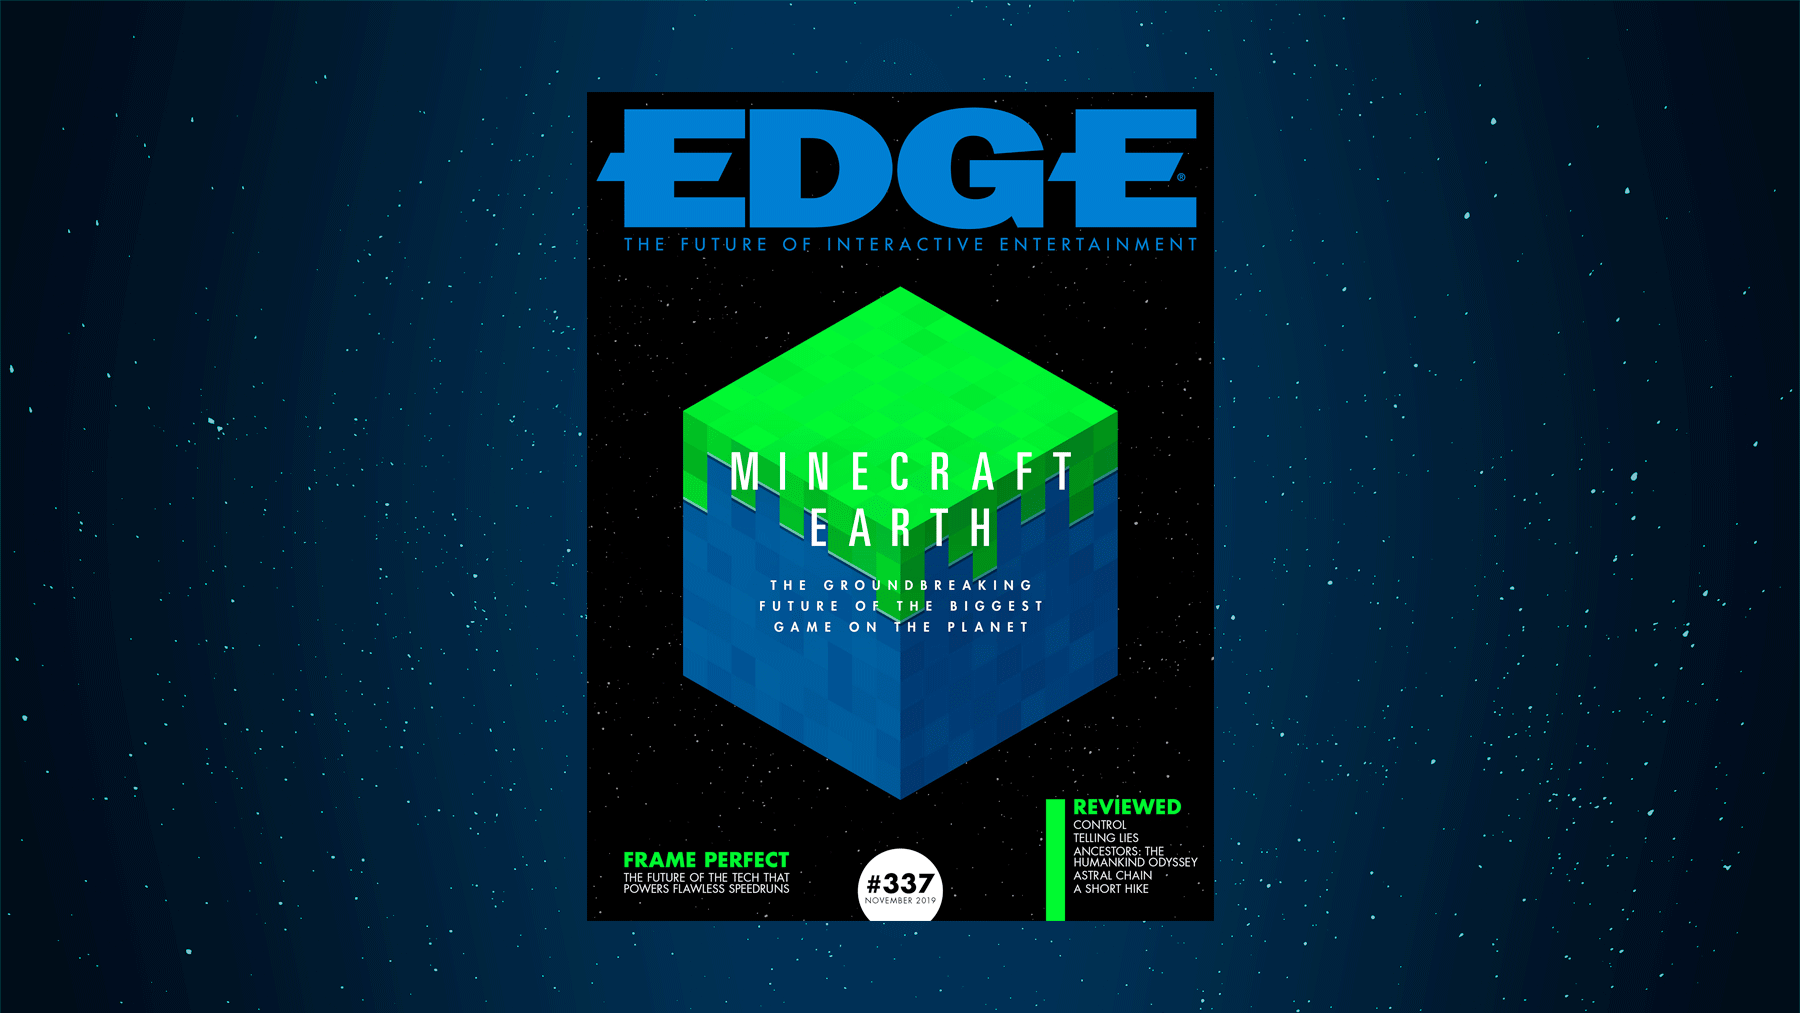 Minecraft Earth, the groundbreaking future of the biggest